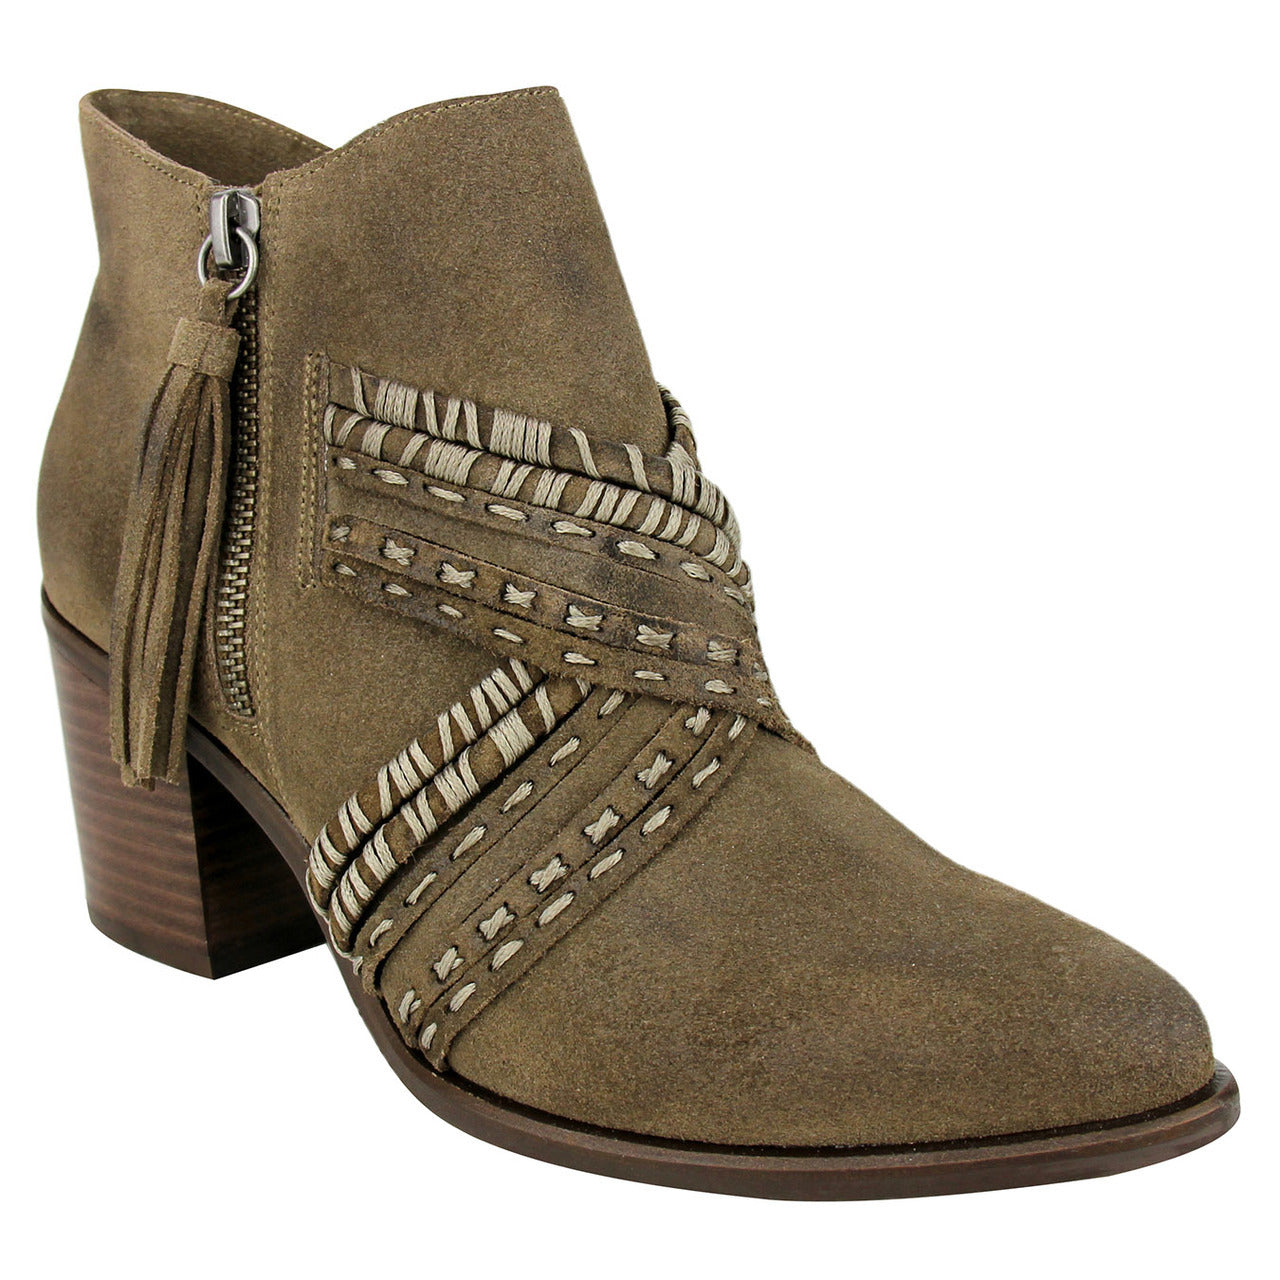 naughty_monkey_bootie-zipper_heel-women_Noah-Khaki